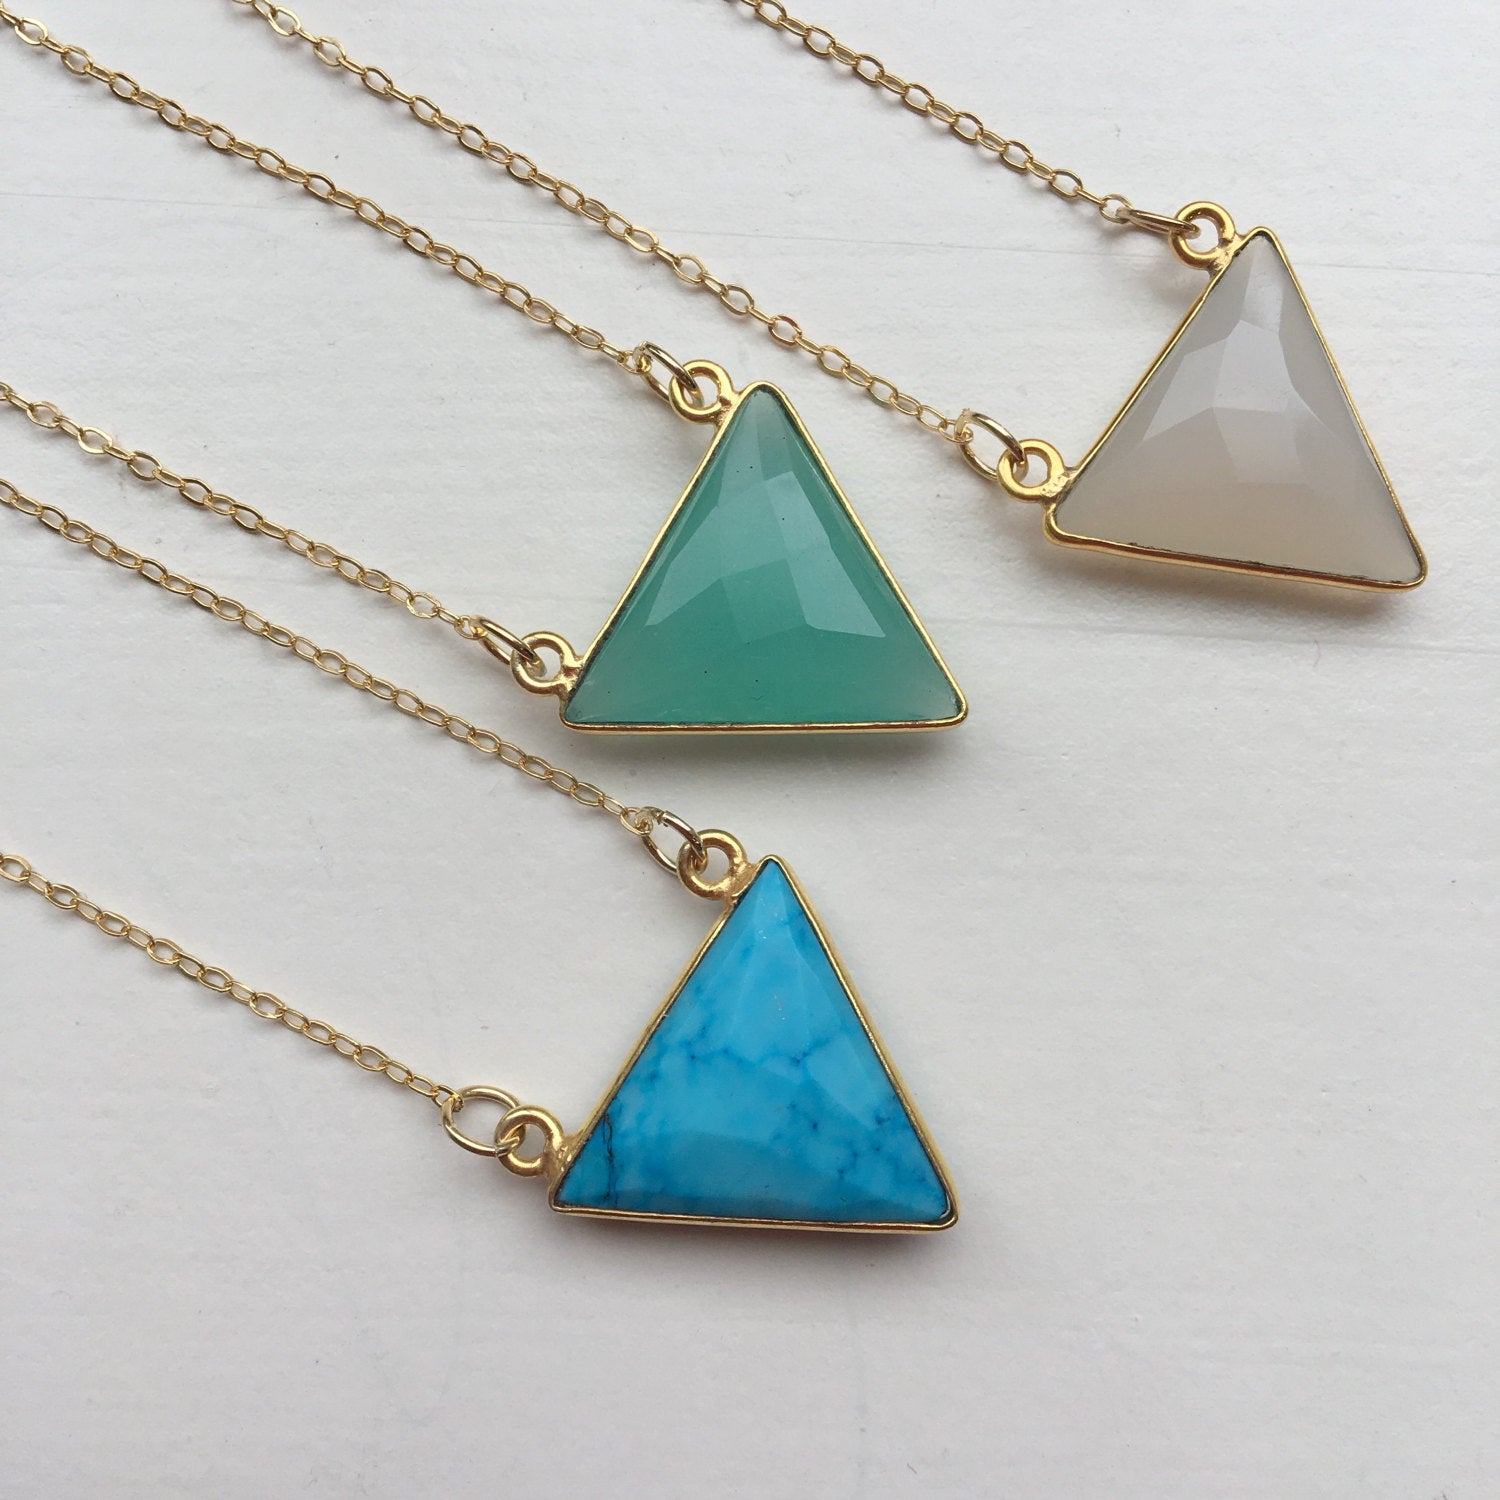 Gold Triangle Necklace, Gemstone Necklace, Gemstone Jewelry, Triangle Jewelry, Gift for Her, Turquoise White Aqua Chalcedony Dainty Necklace